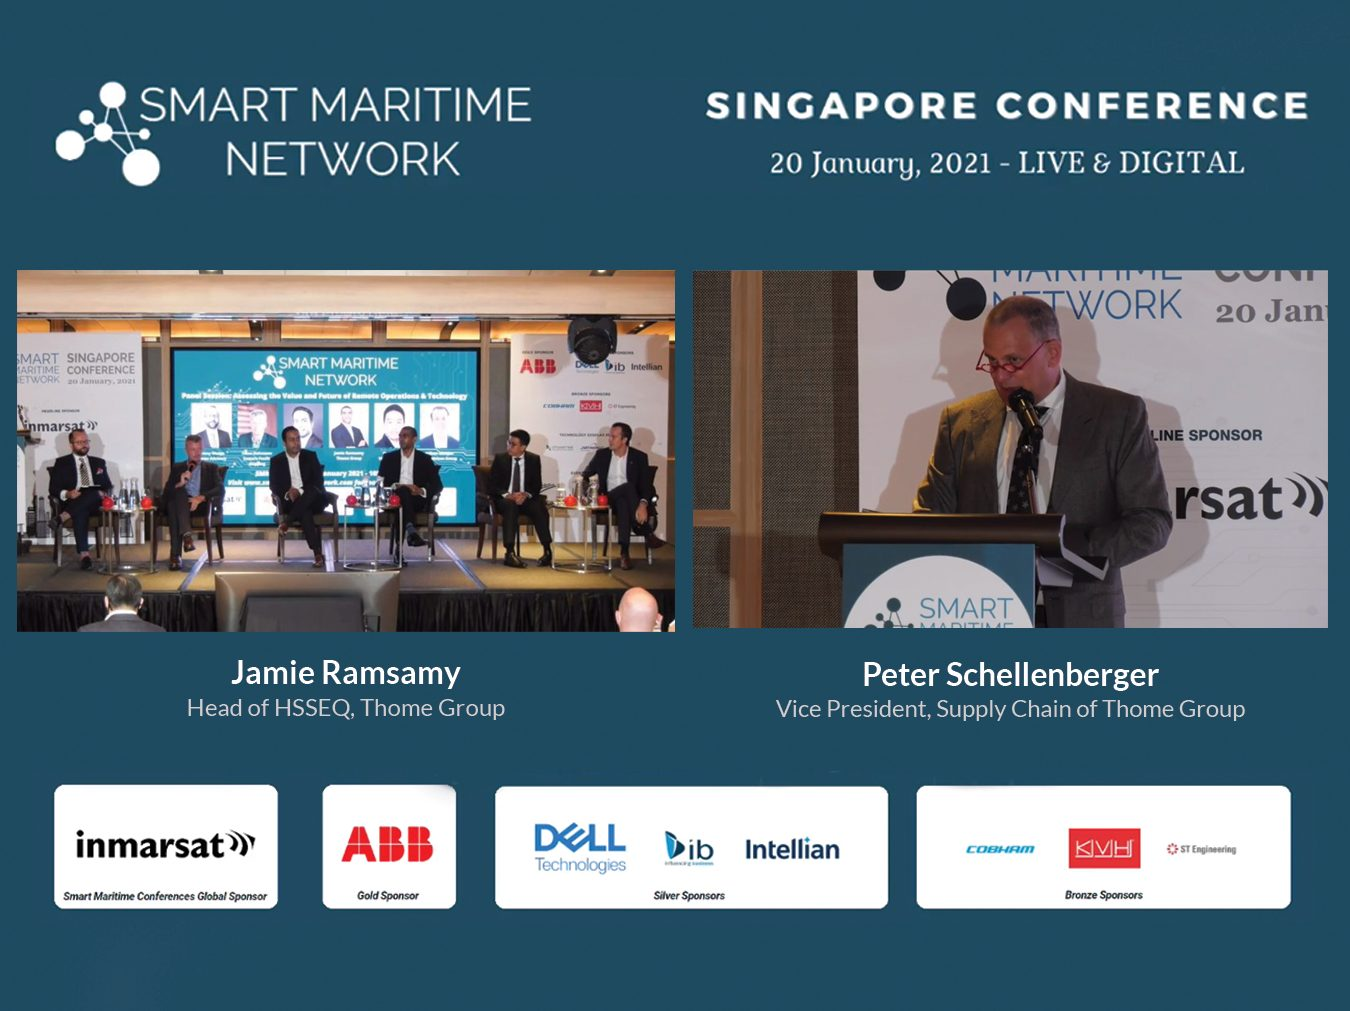 Smart Maritime Network Singapore Conference 2021